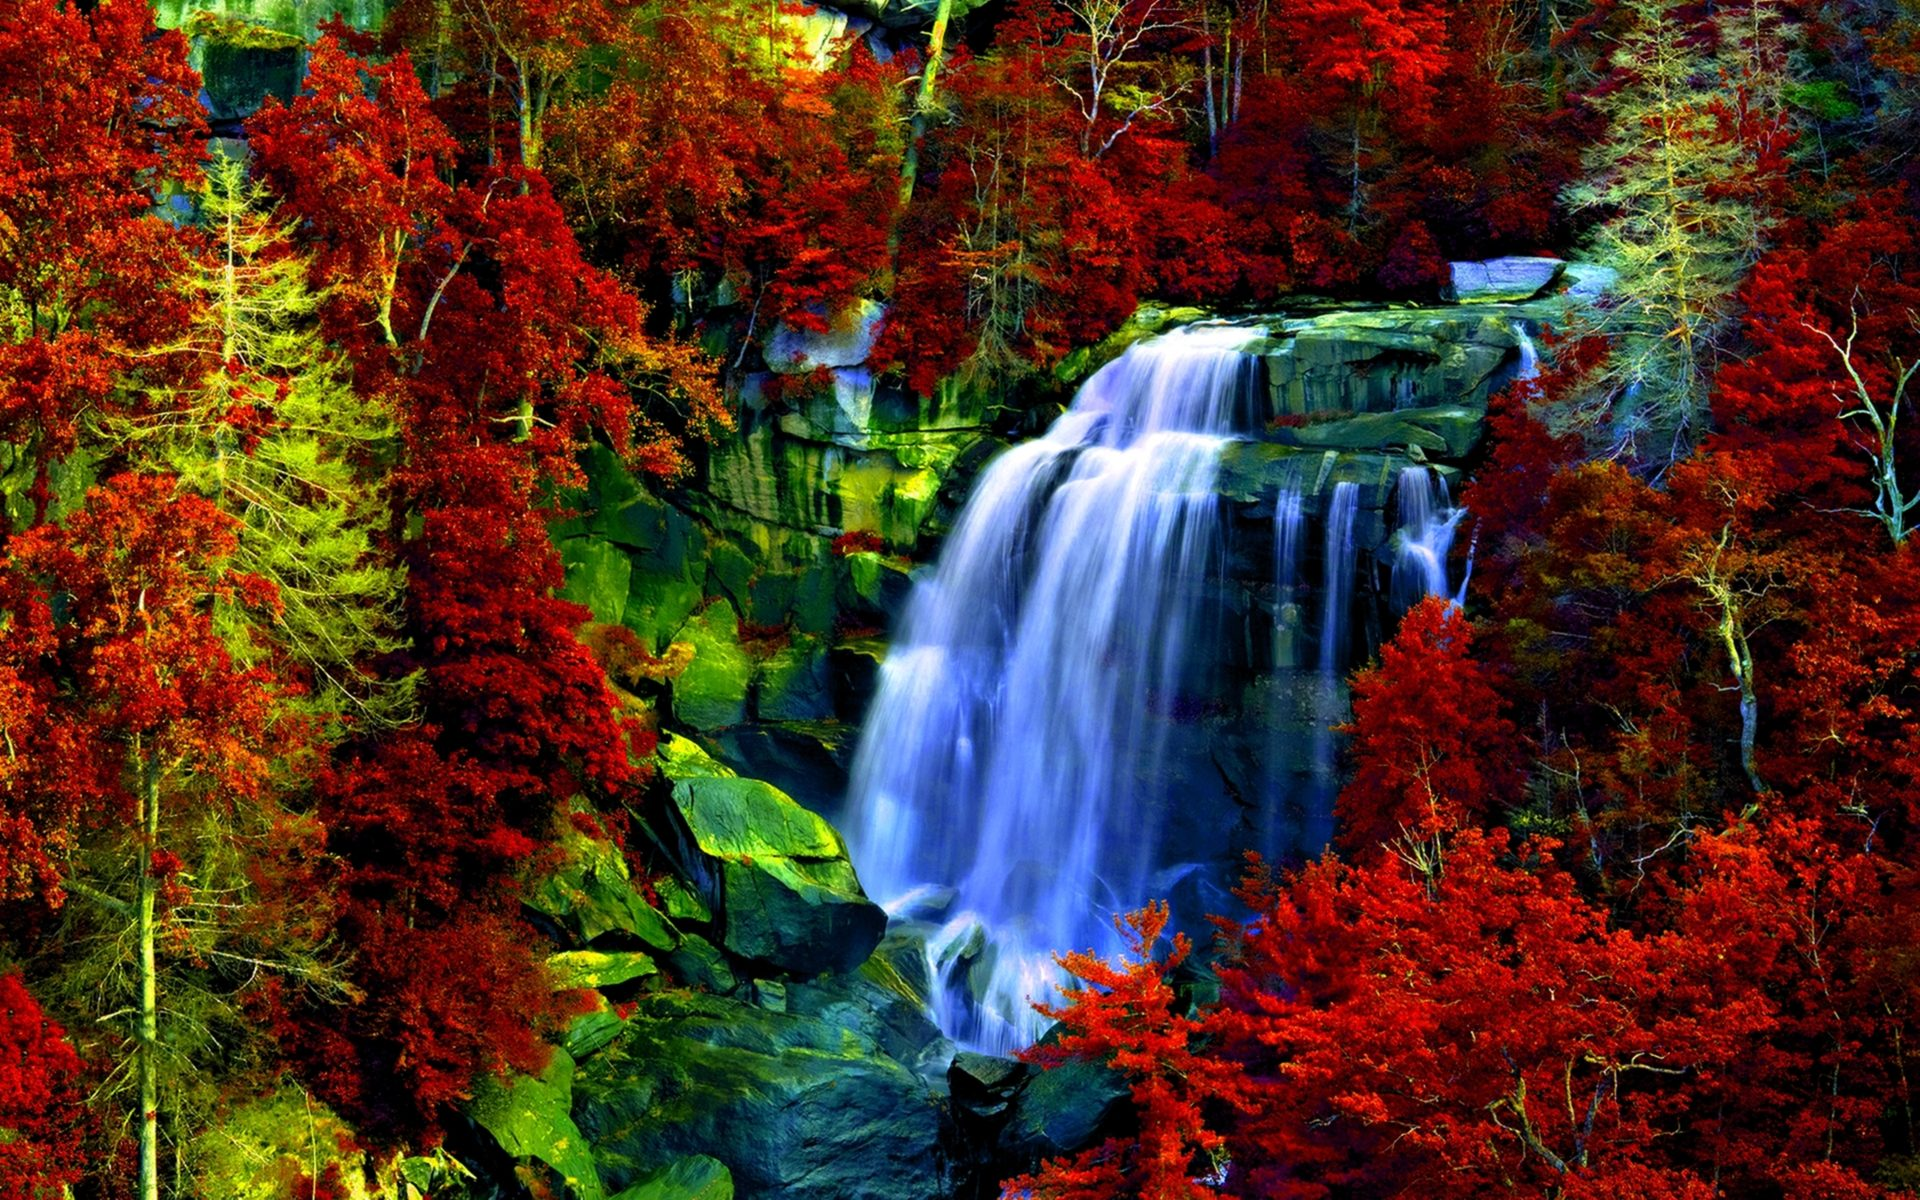 Multonomah Falls Wallpaper Desktop Waterfall Rocks Forest Red Leaves Background Hd